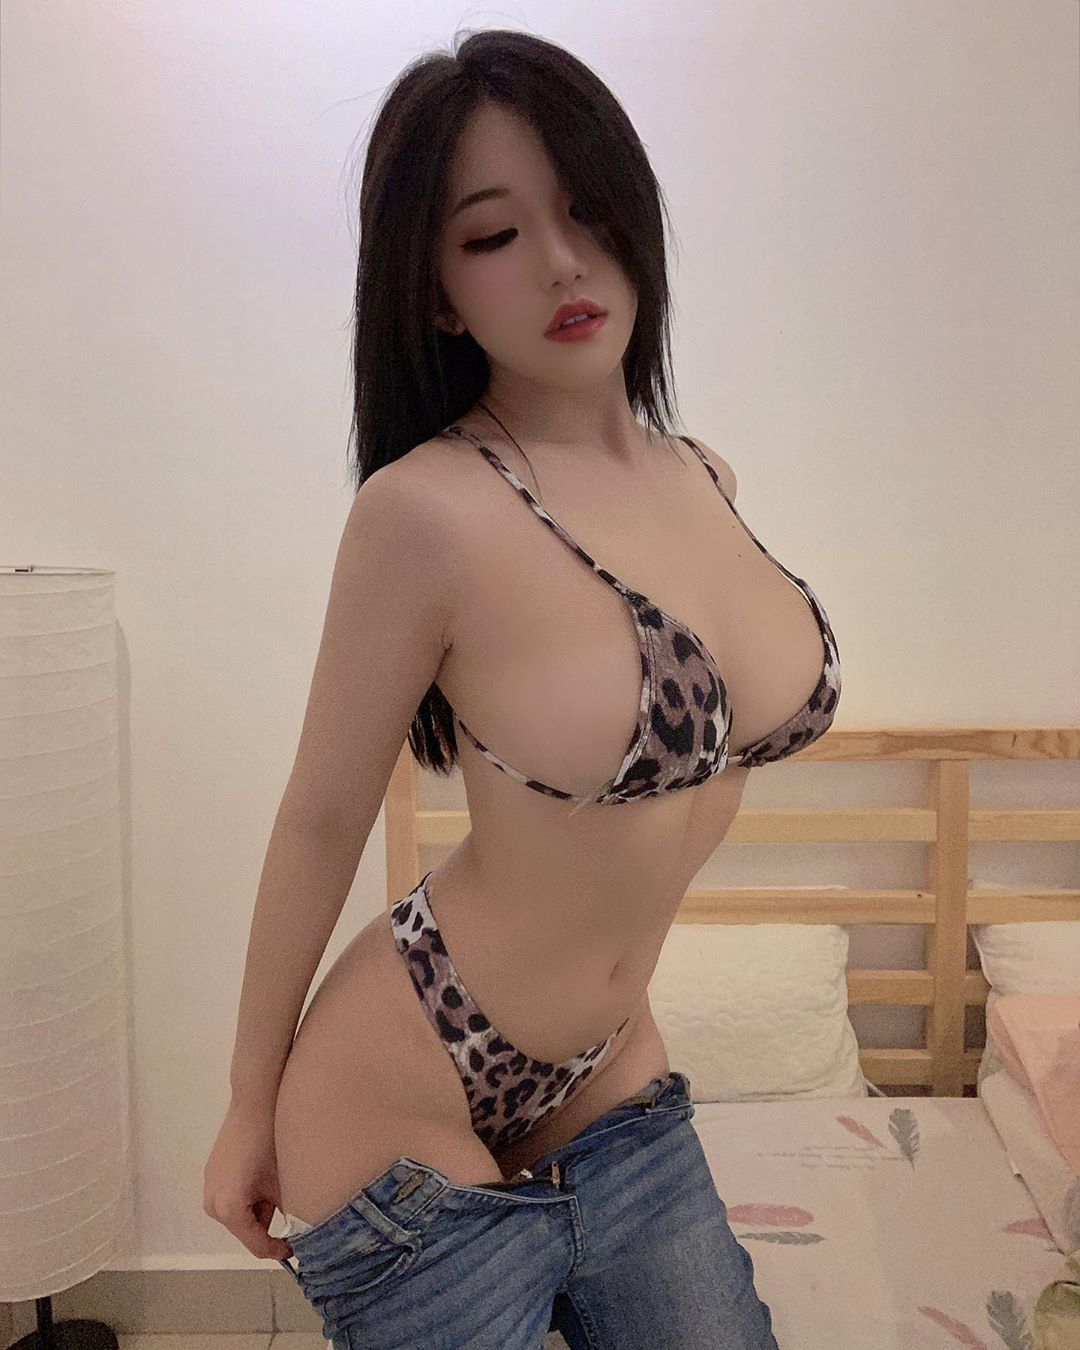 ms_puiyi Onlyfans